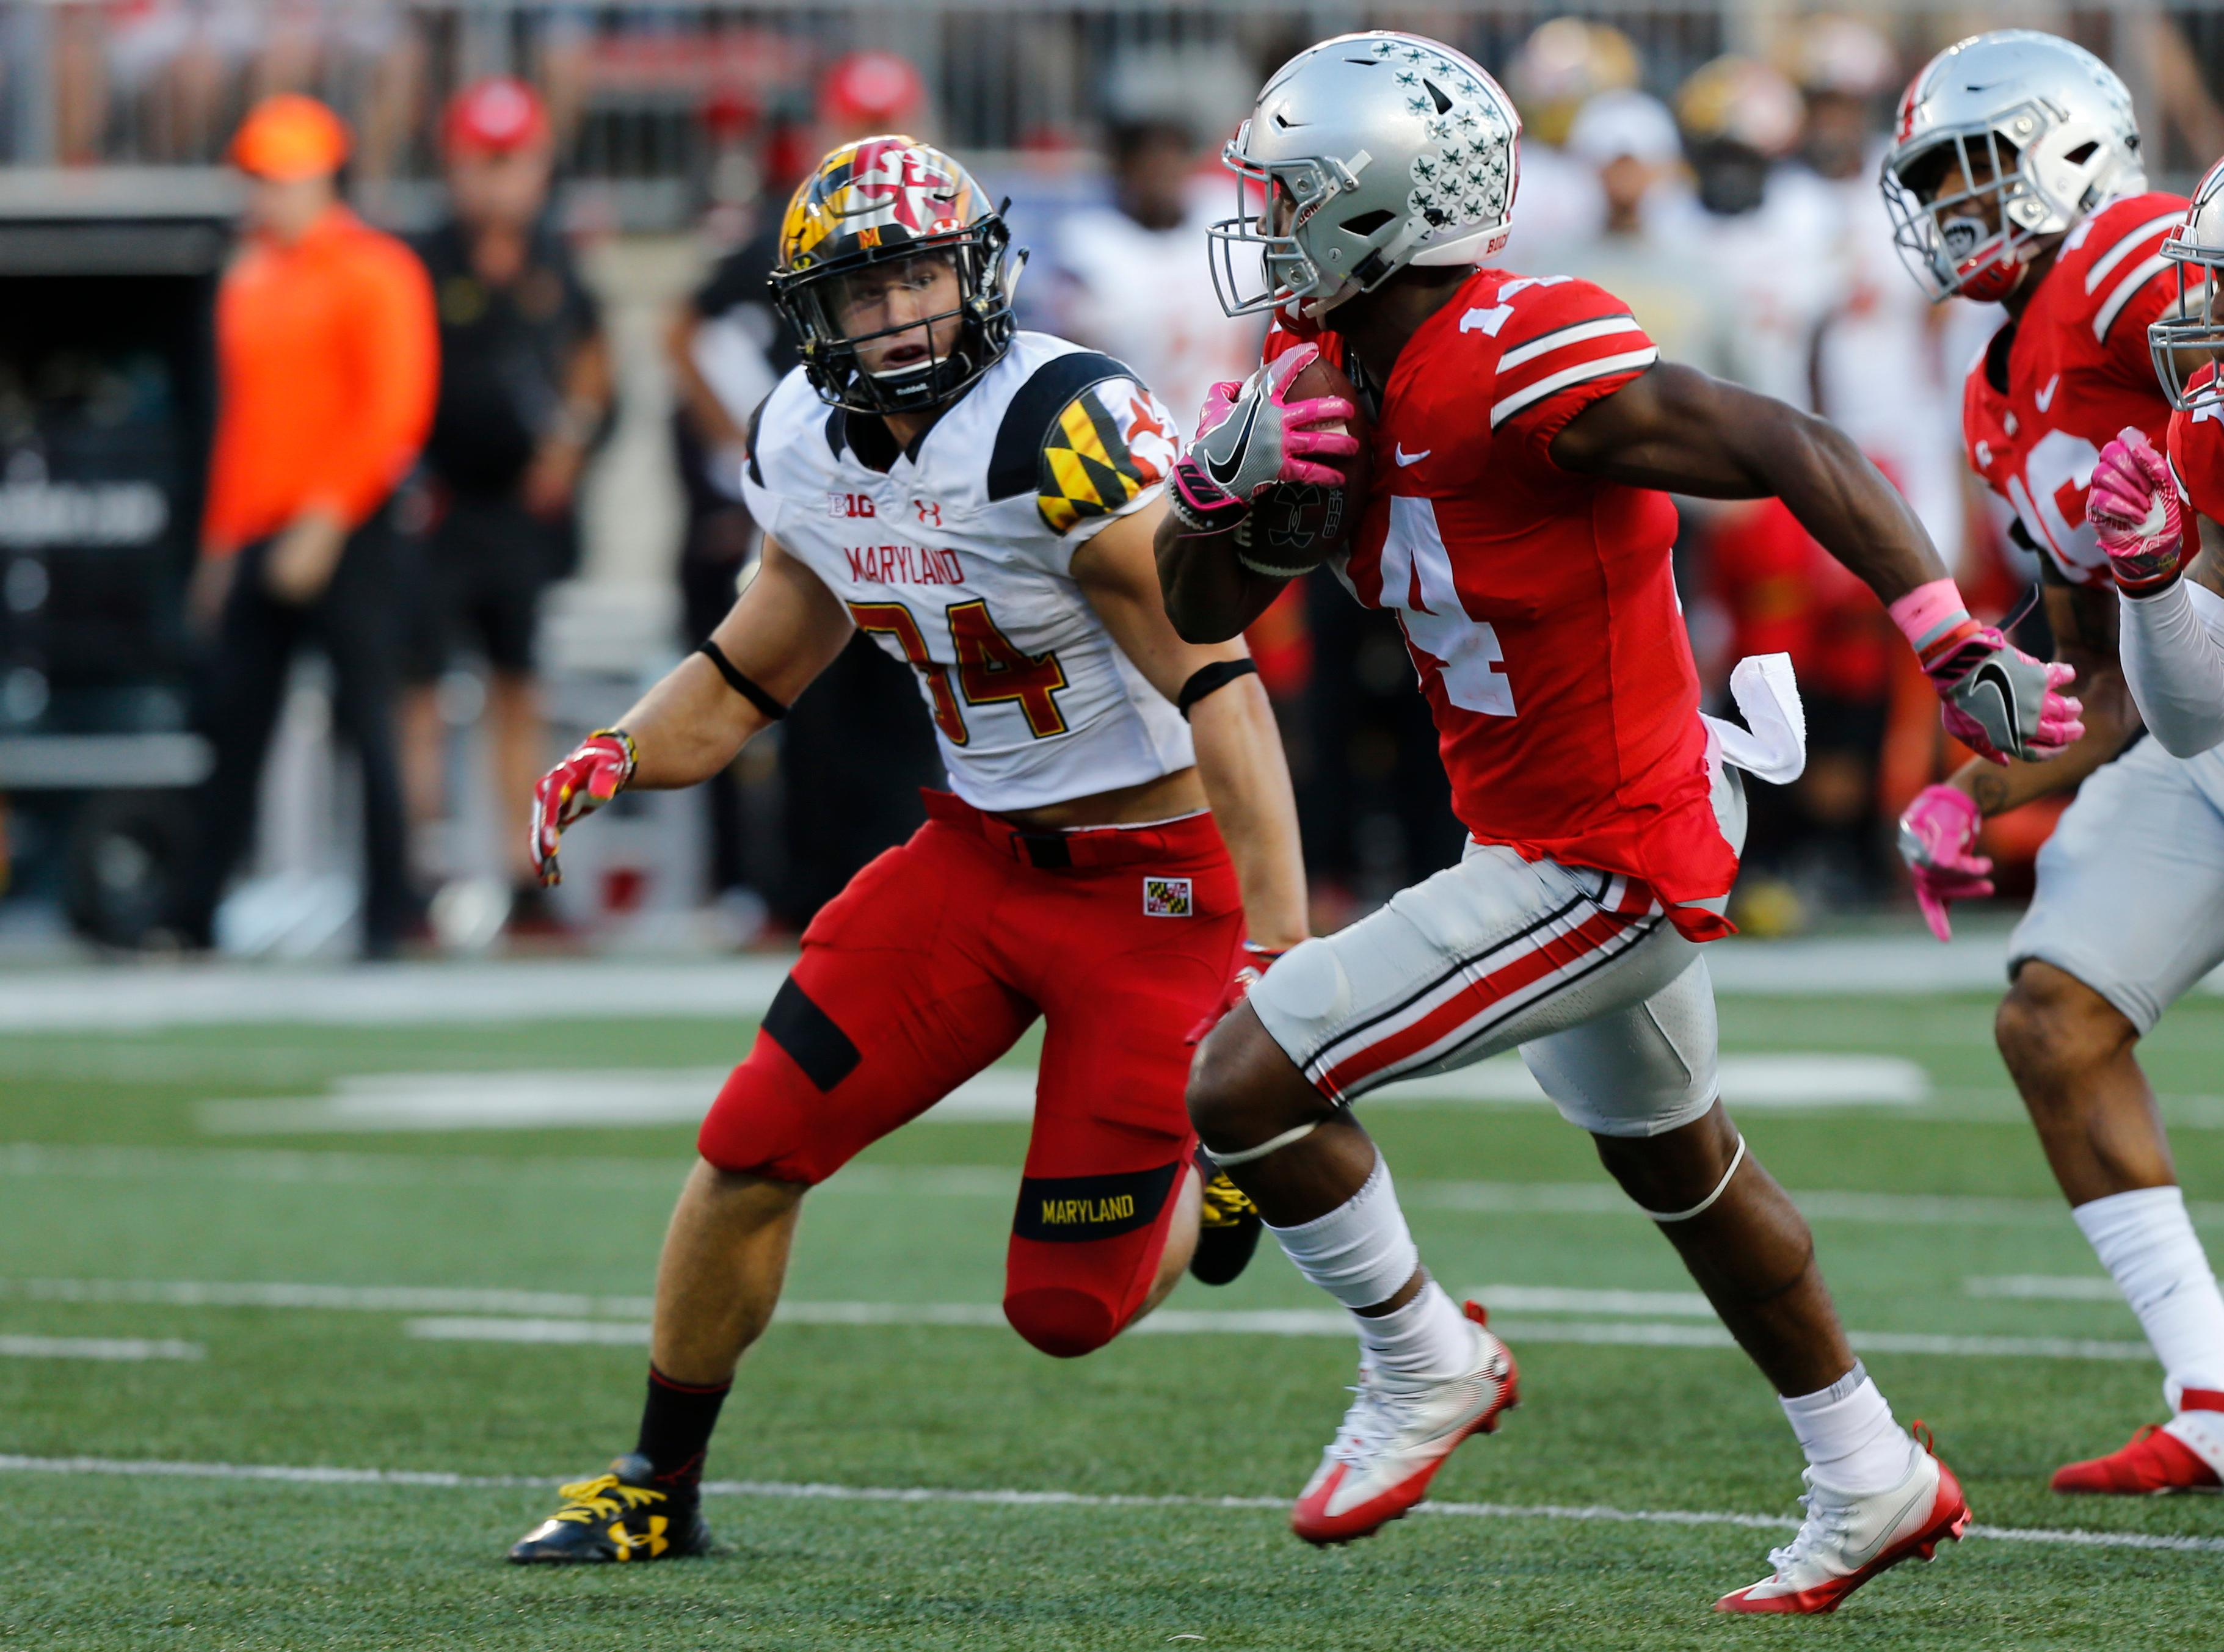 Ohio State receiver K.J. Hill, right, returns a punt as Maryland defender Jake Funk chases him during the first half of an NCAA college football game Saturday, Oct. 7, 2017, in Columbus, Ohio. (AP Photo/Jay LaPrete)